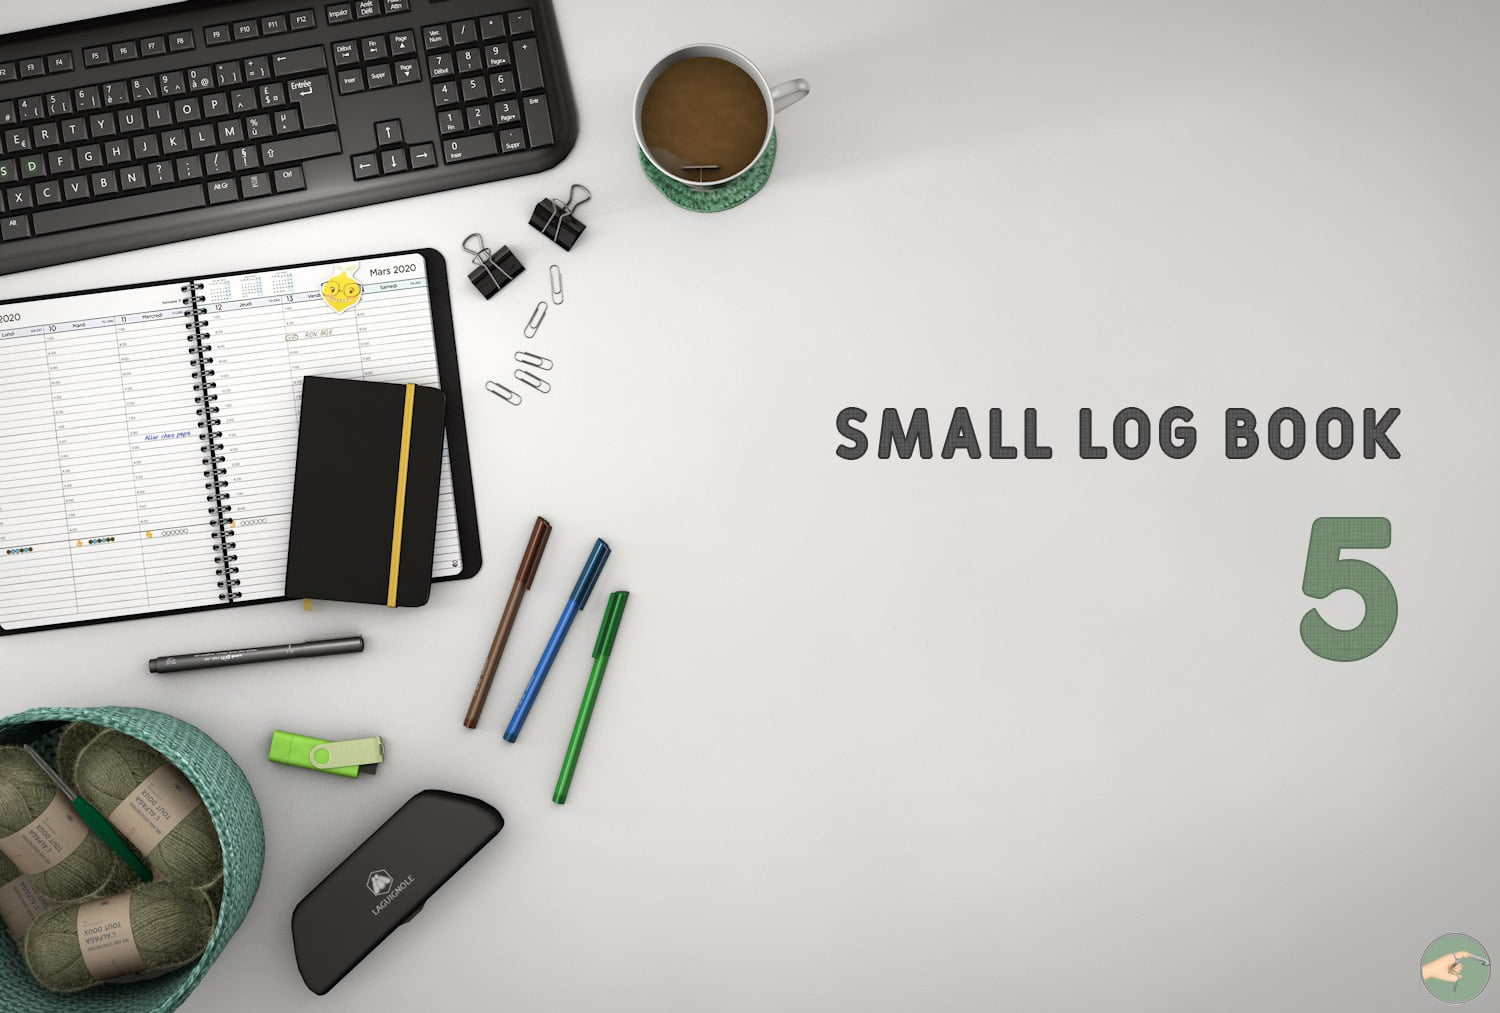 Small Log Book 5 – New hobby, new prototype (again) and some news